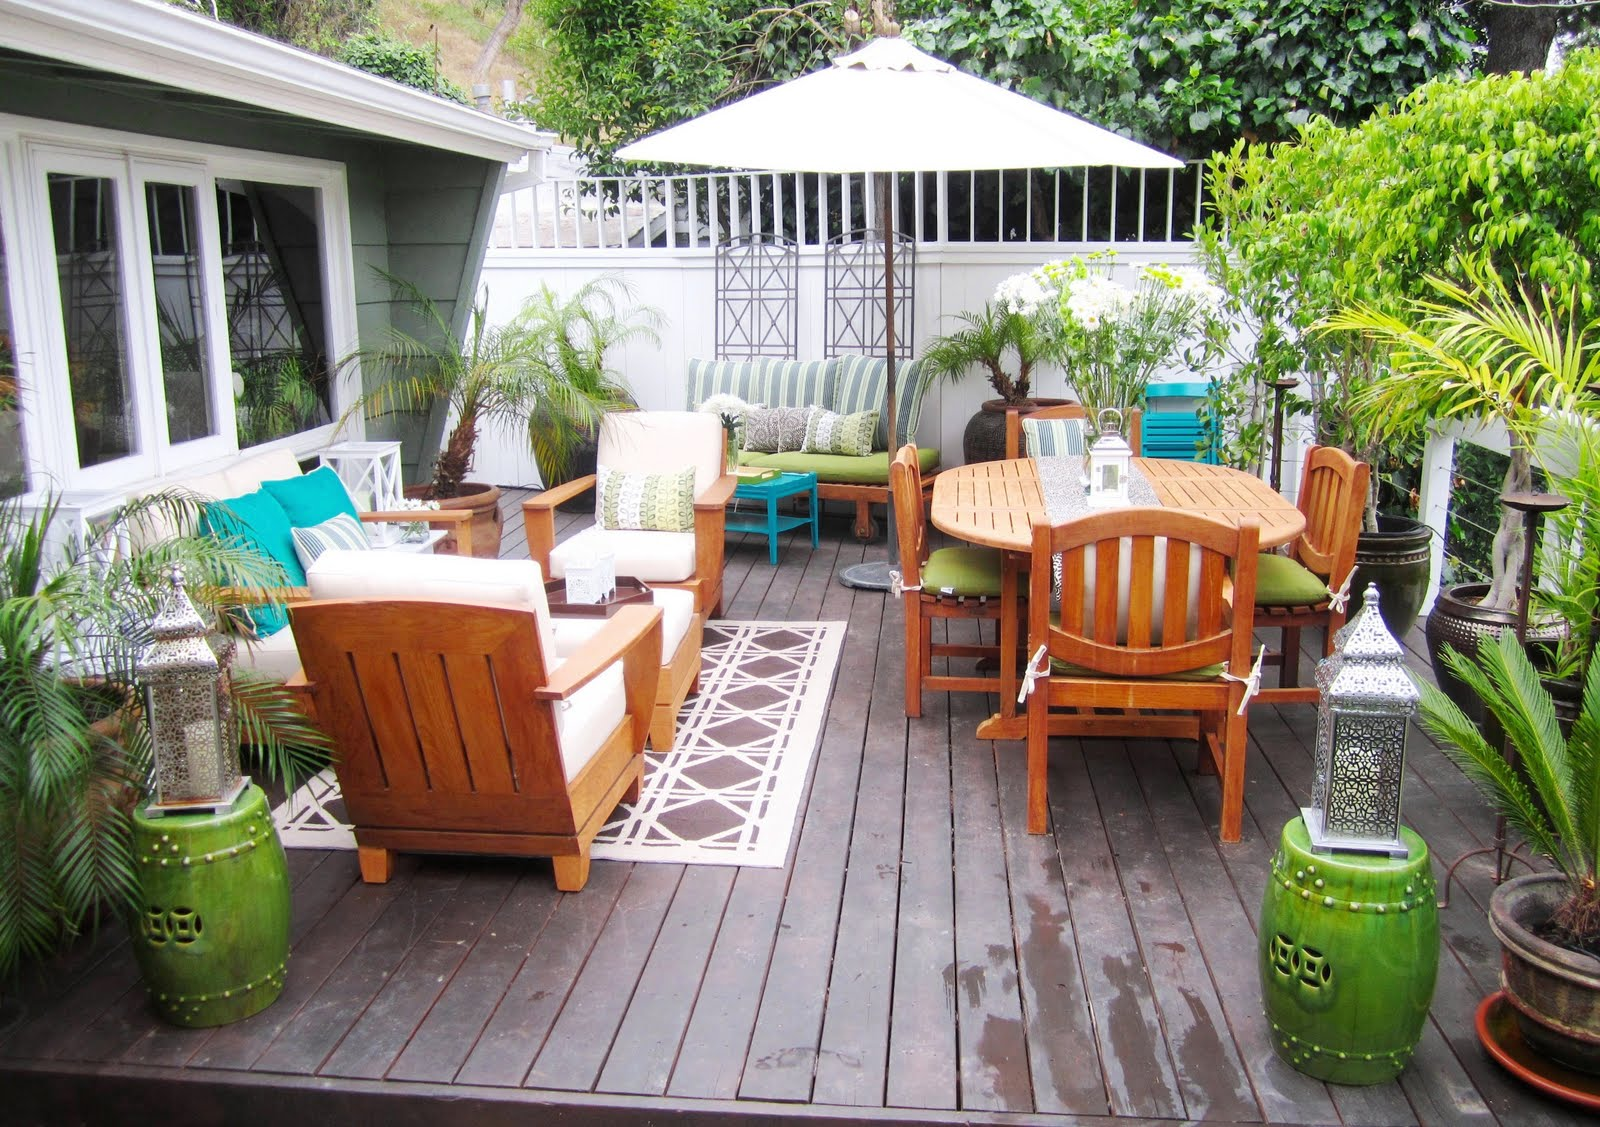 Patio Decorating Ideas for Decks